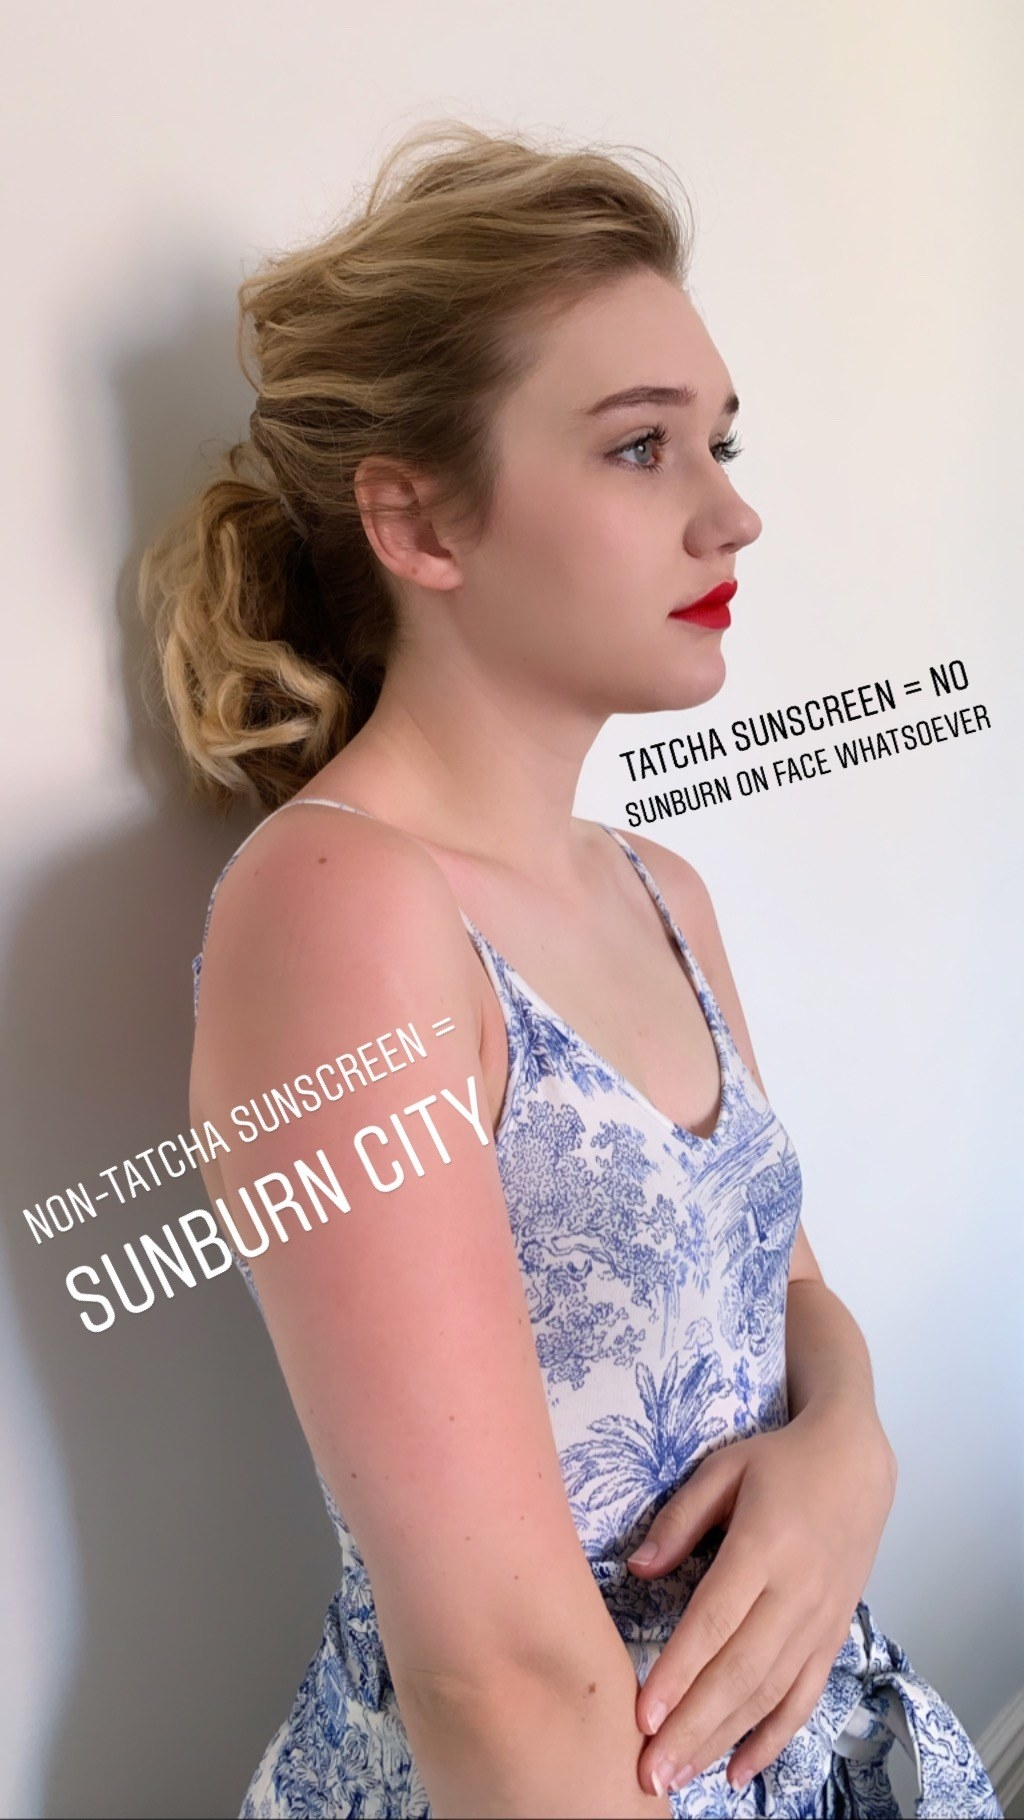 """Me, with no sunburn on my face with text """"tatcha sunscreen = no sunburn on face whatsoever"""" and with sunburned arm with text """"non-tatcha sunscreen = sunburn city"""""""